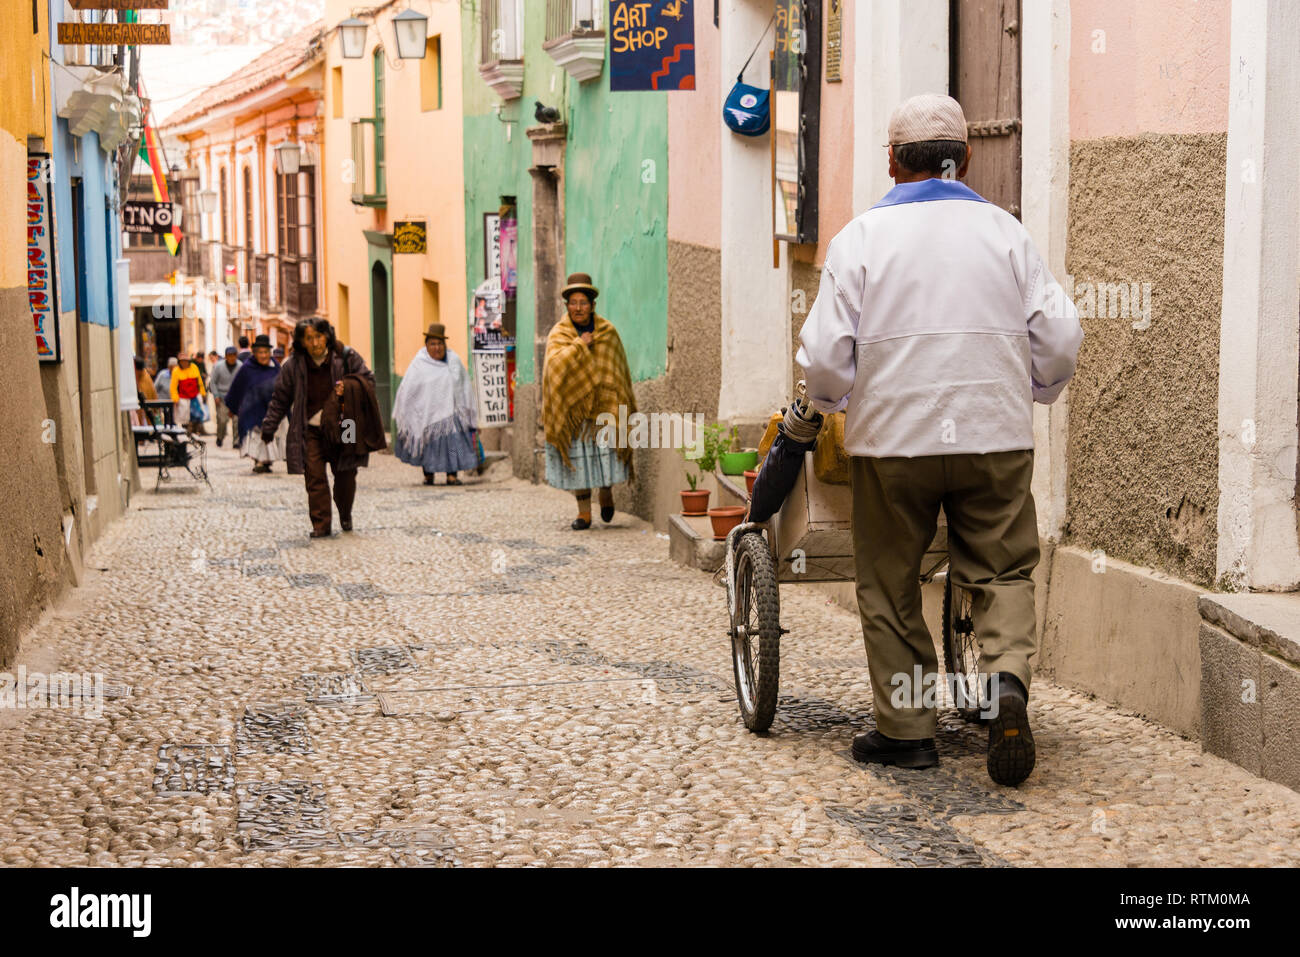 Jaen Street (Calle Jaén) Representing historic La Paz is a quaint, cobble-stoned street, home to a range of museums, shops, bars and restaurants. Char - Stock Image